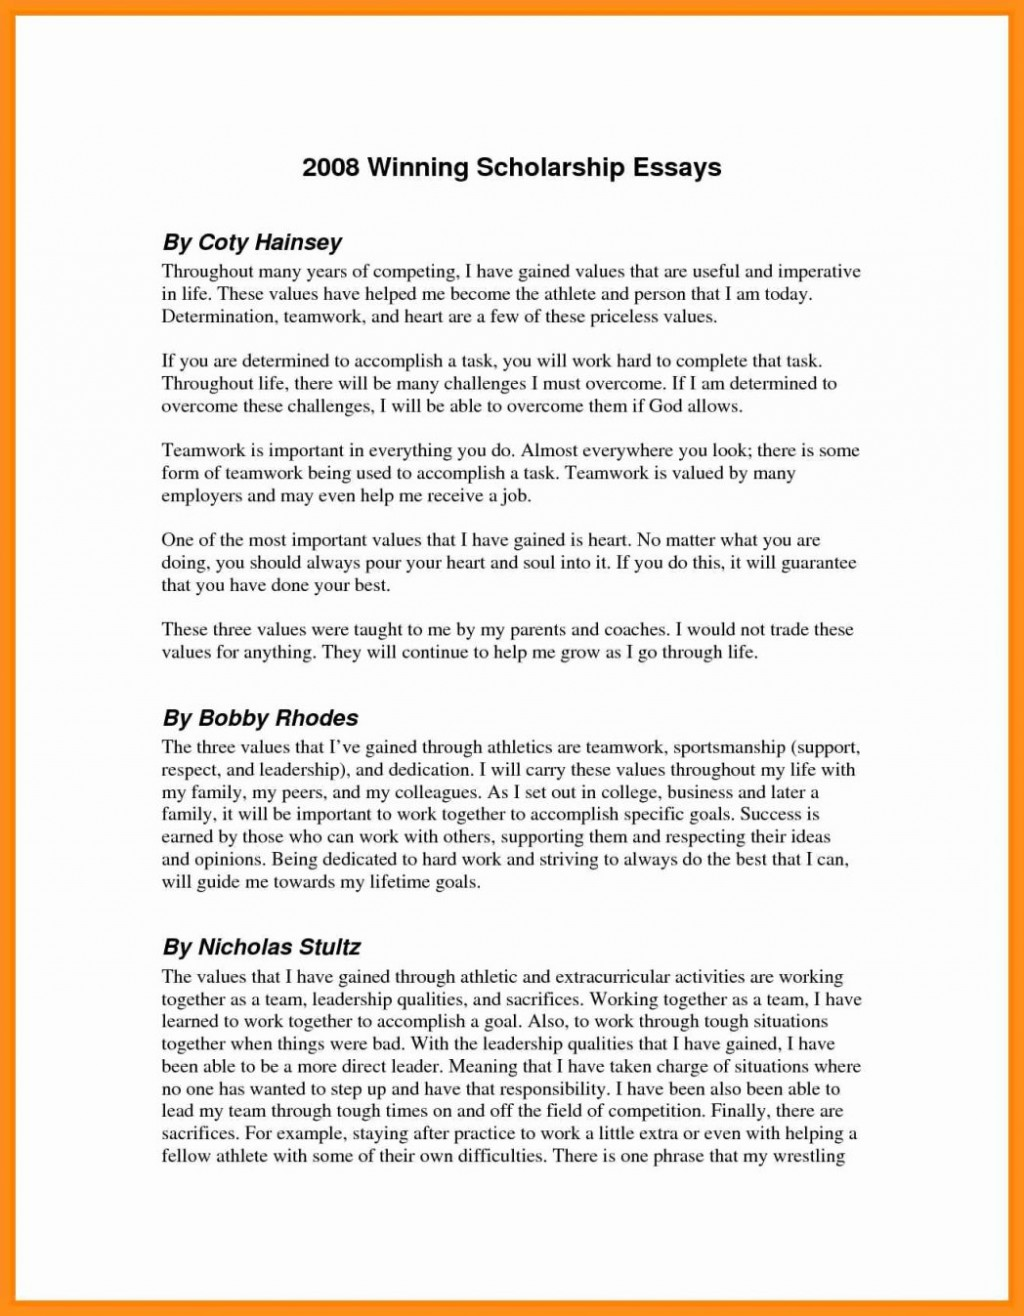 020 Examples Of Scholarshipsay Winning Resume Financi Pdf Career Goals Nursing About Yourself Financial Need Words Why Do You Deserve This Single Mother 1048x1347 Word Dreaded 500 Scholarship Essay Samples How To Write A Large